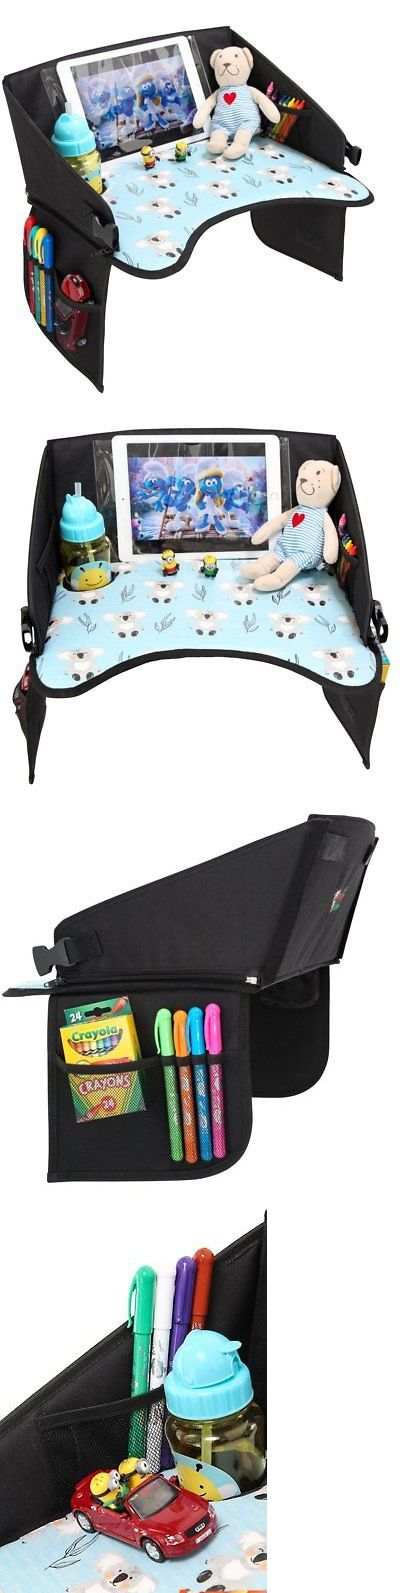 Car Seat Accessories 66693: Toddlers Carseat Travel Tray With Clear Tablet Pocket - Inclined Front Wall For -> BUY IT NOW ONLY: $33.93 on eBay!